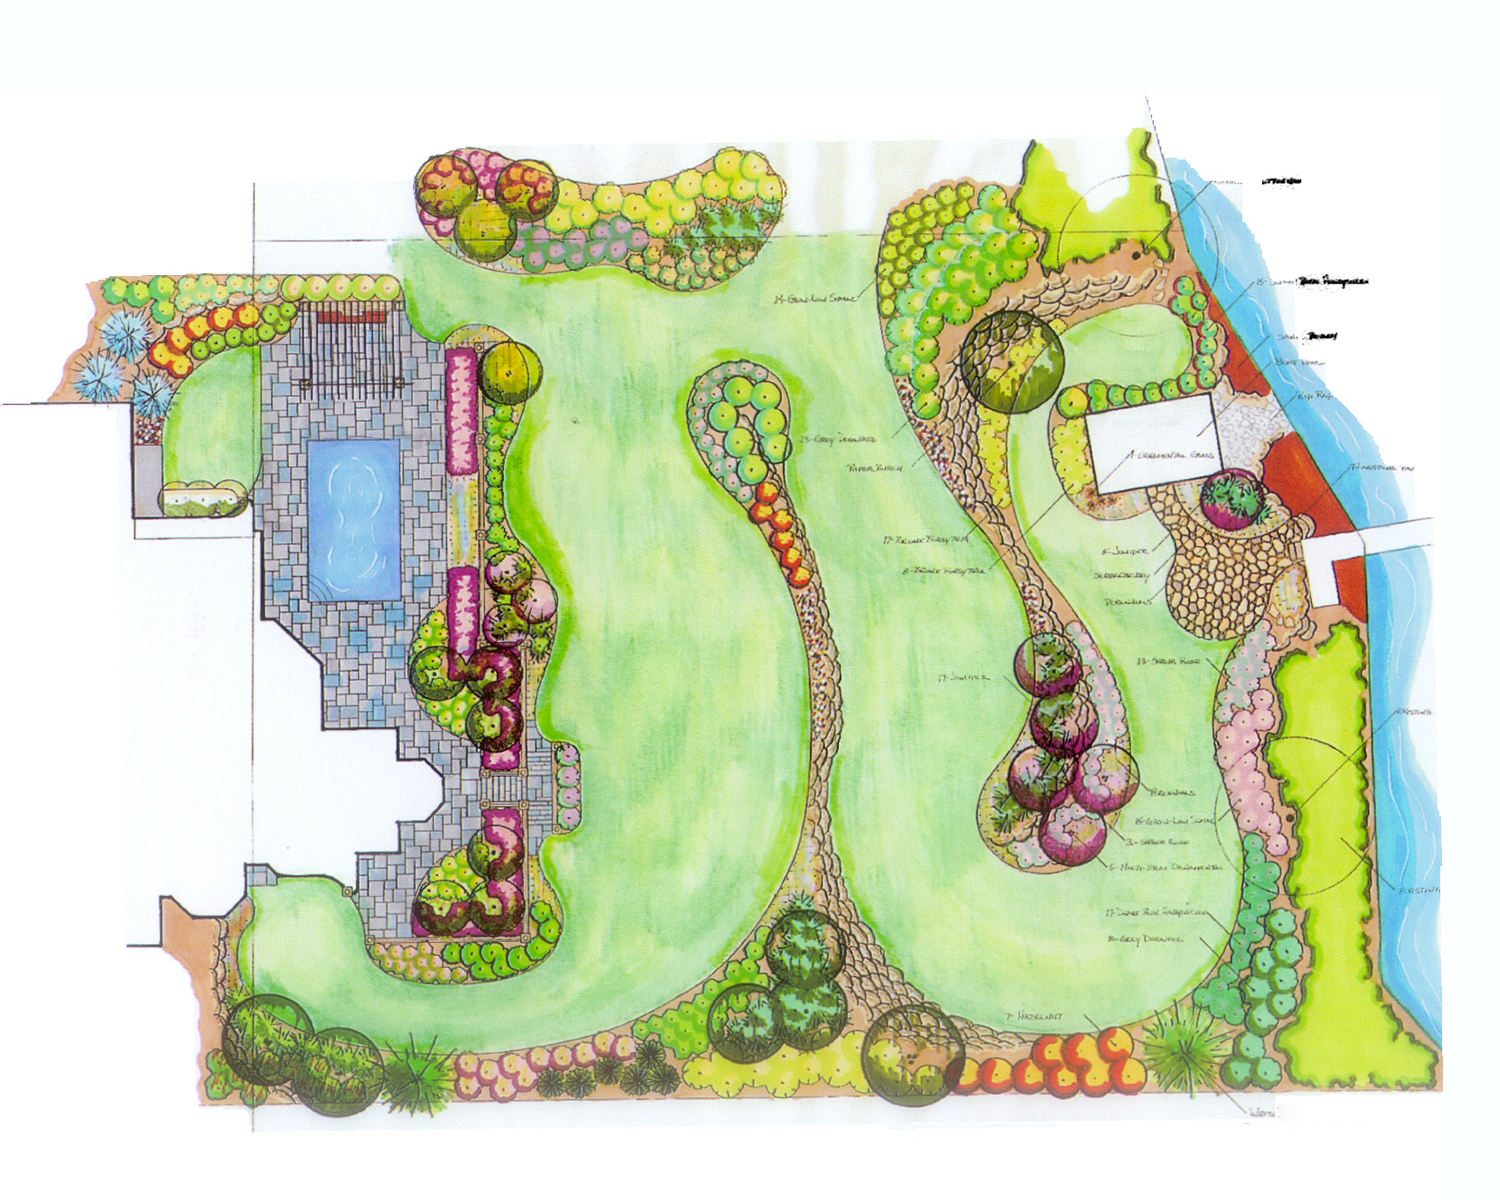 A computer rendered landscape design plan, showing the layout of the yard, flower beds, shrubs and gardens around the house.